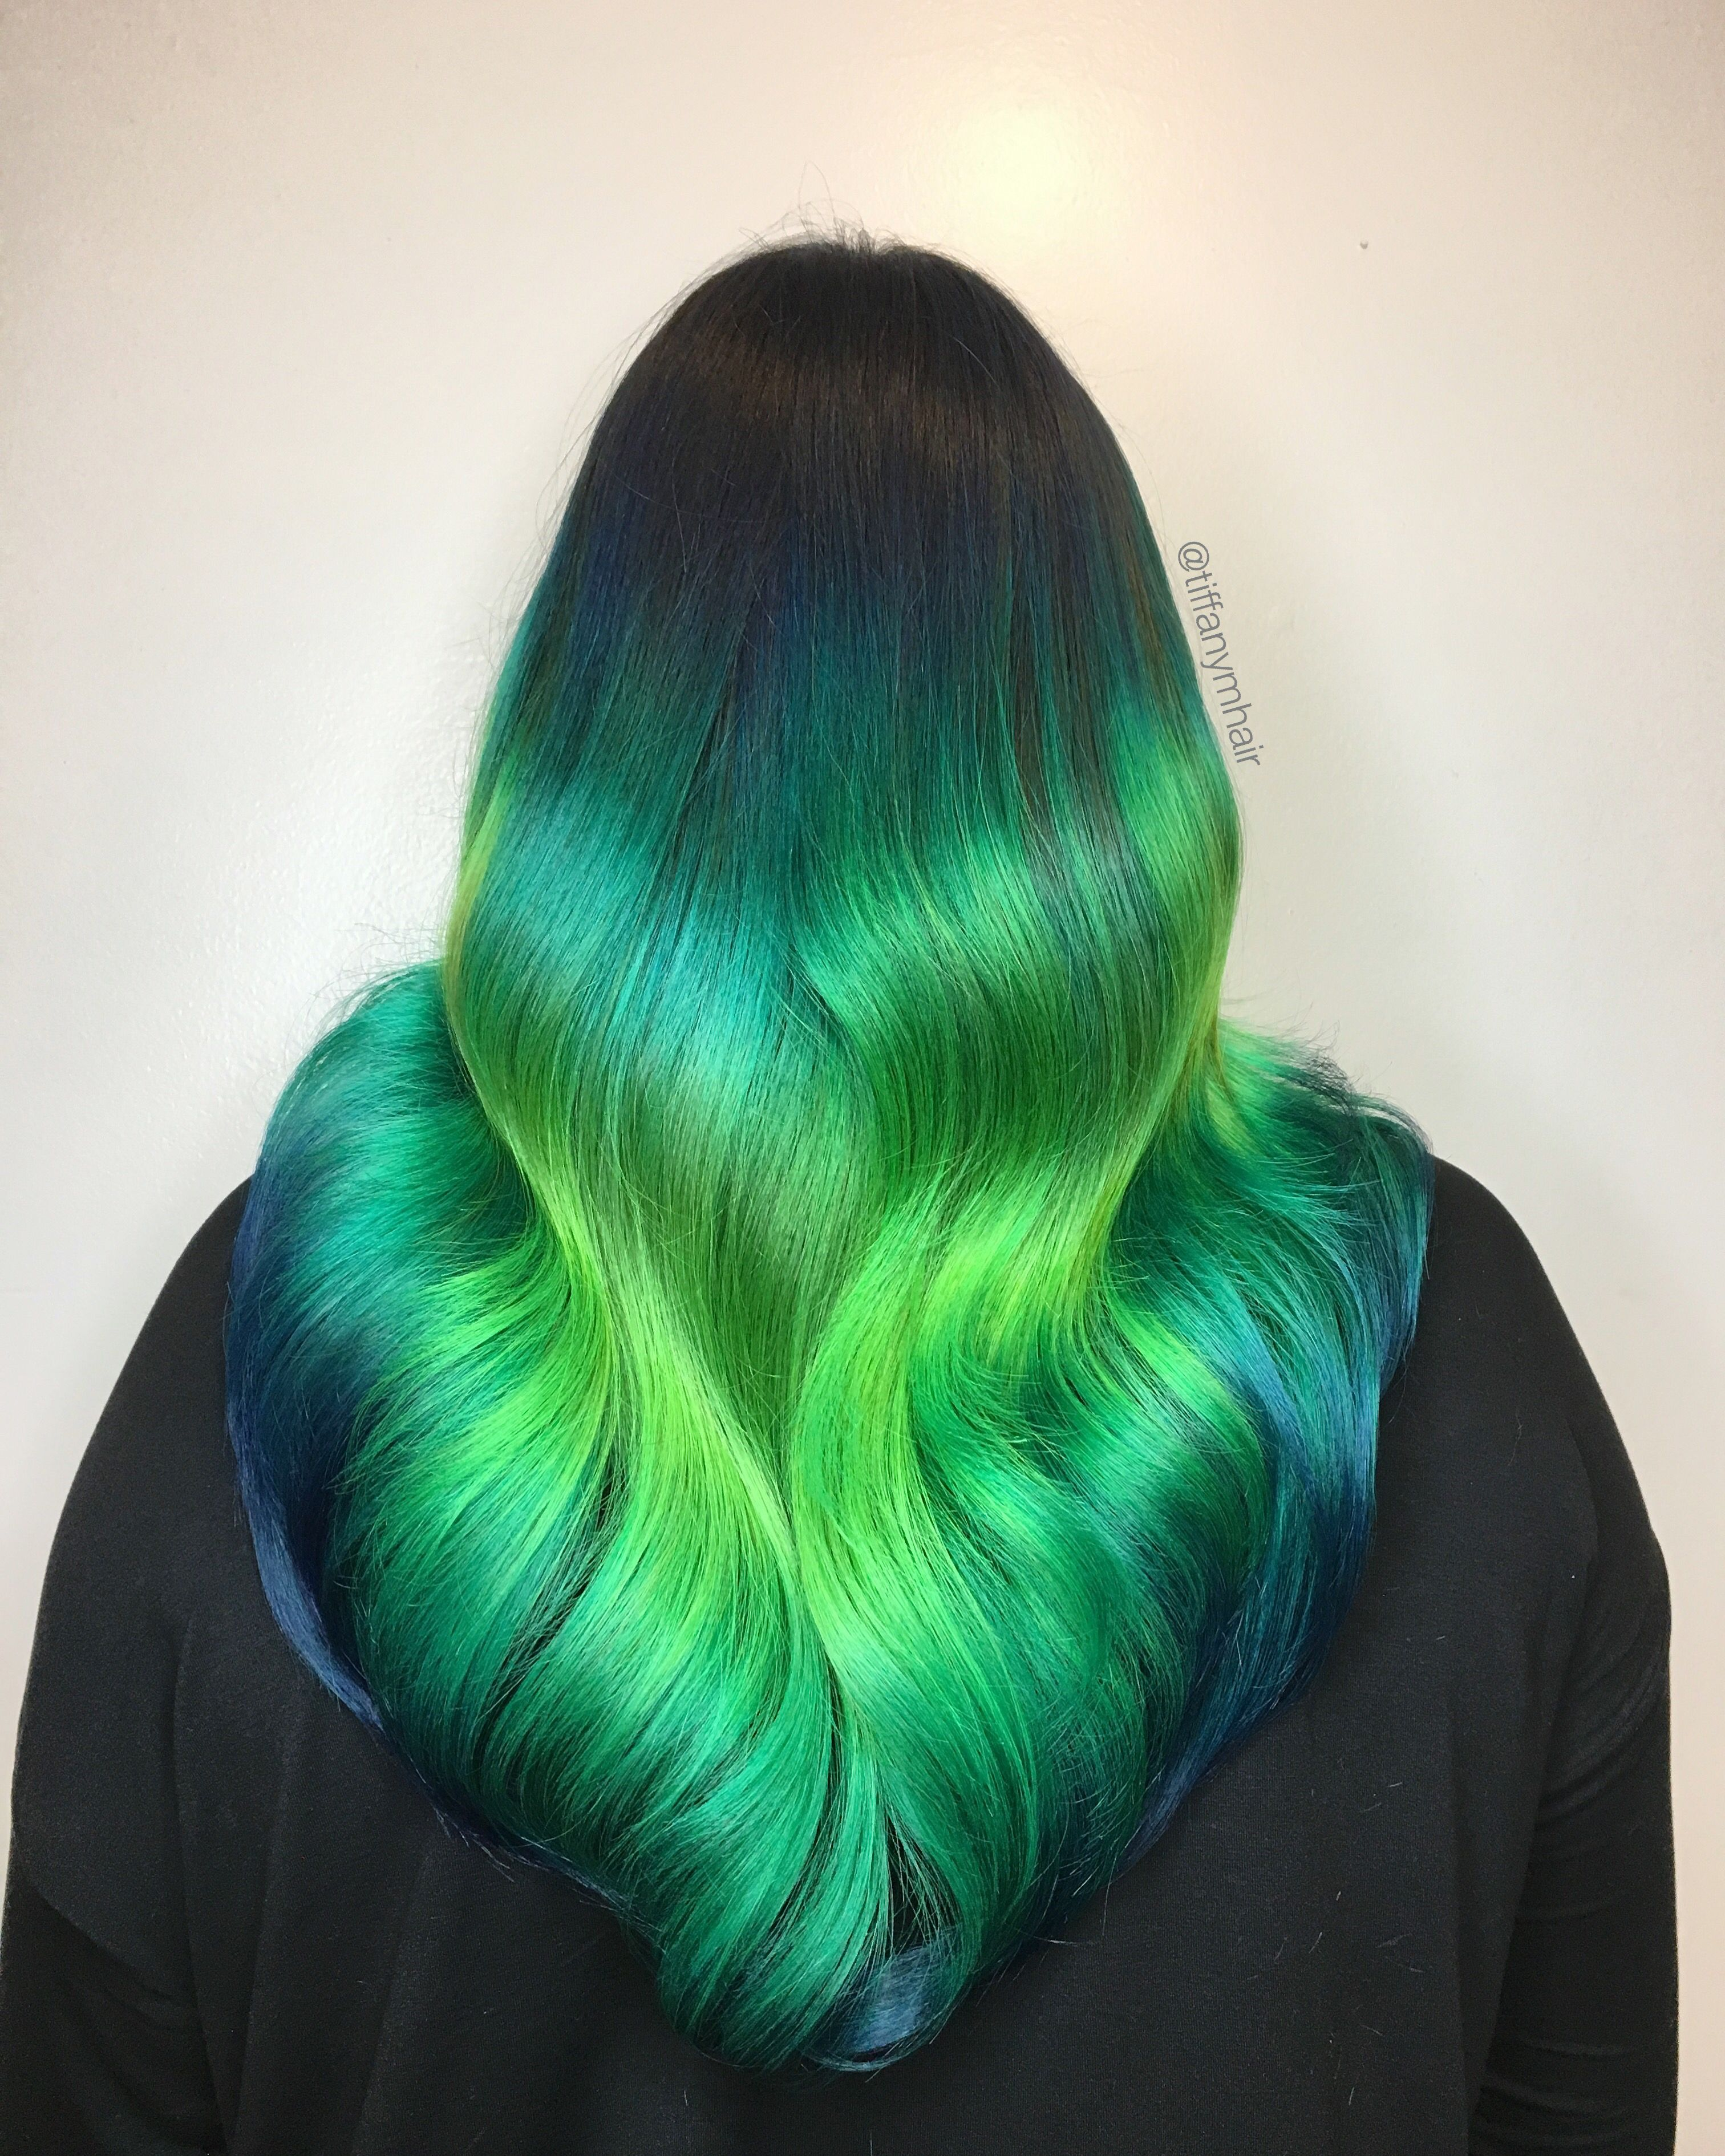 Northern Lights Inspired Hair Color Shine Line Hair Experiment Bright Hair Colors Hair Color